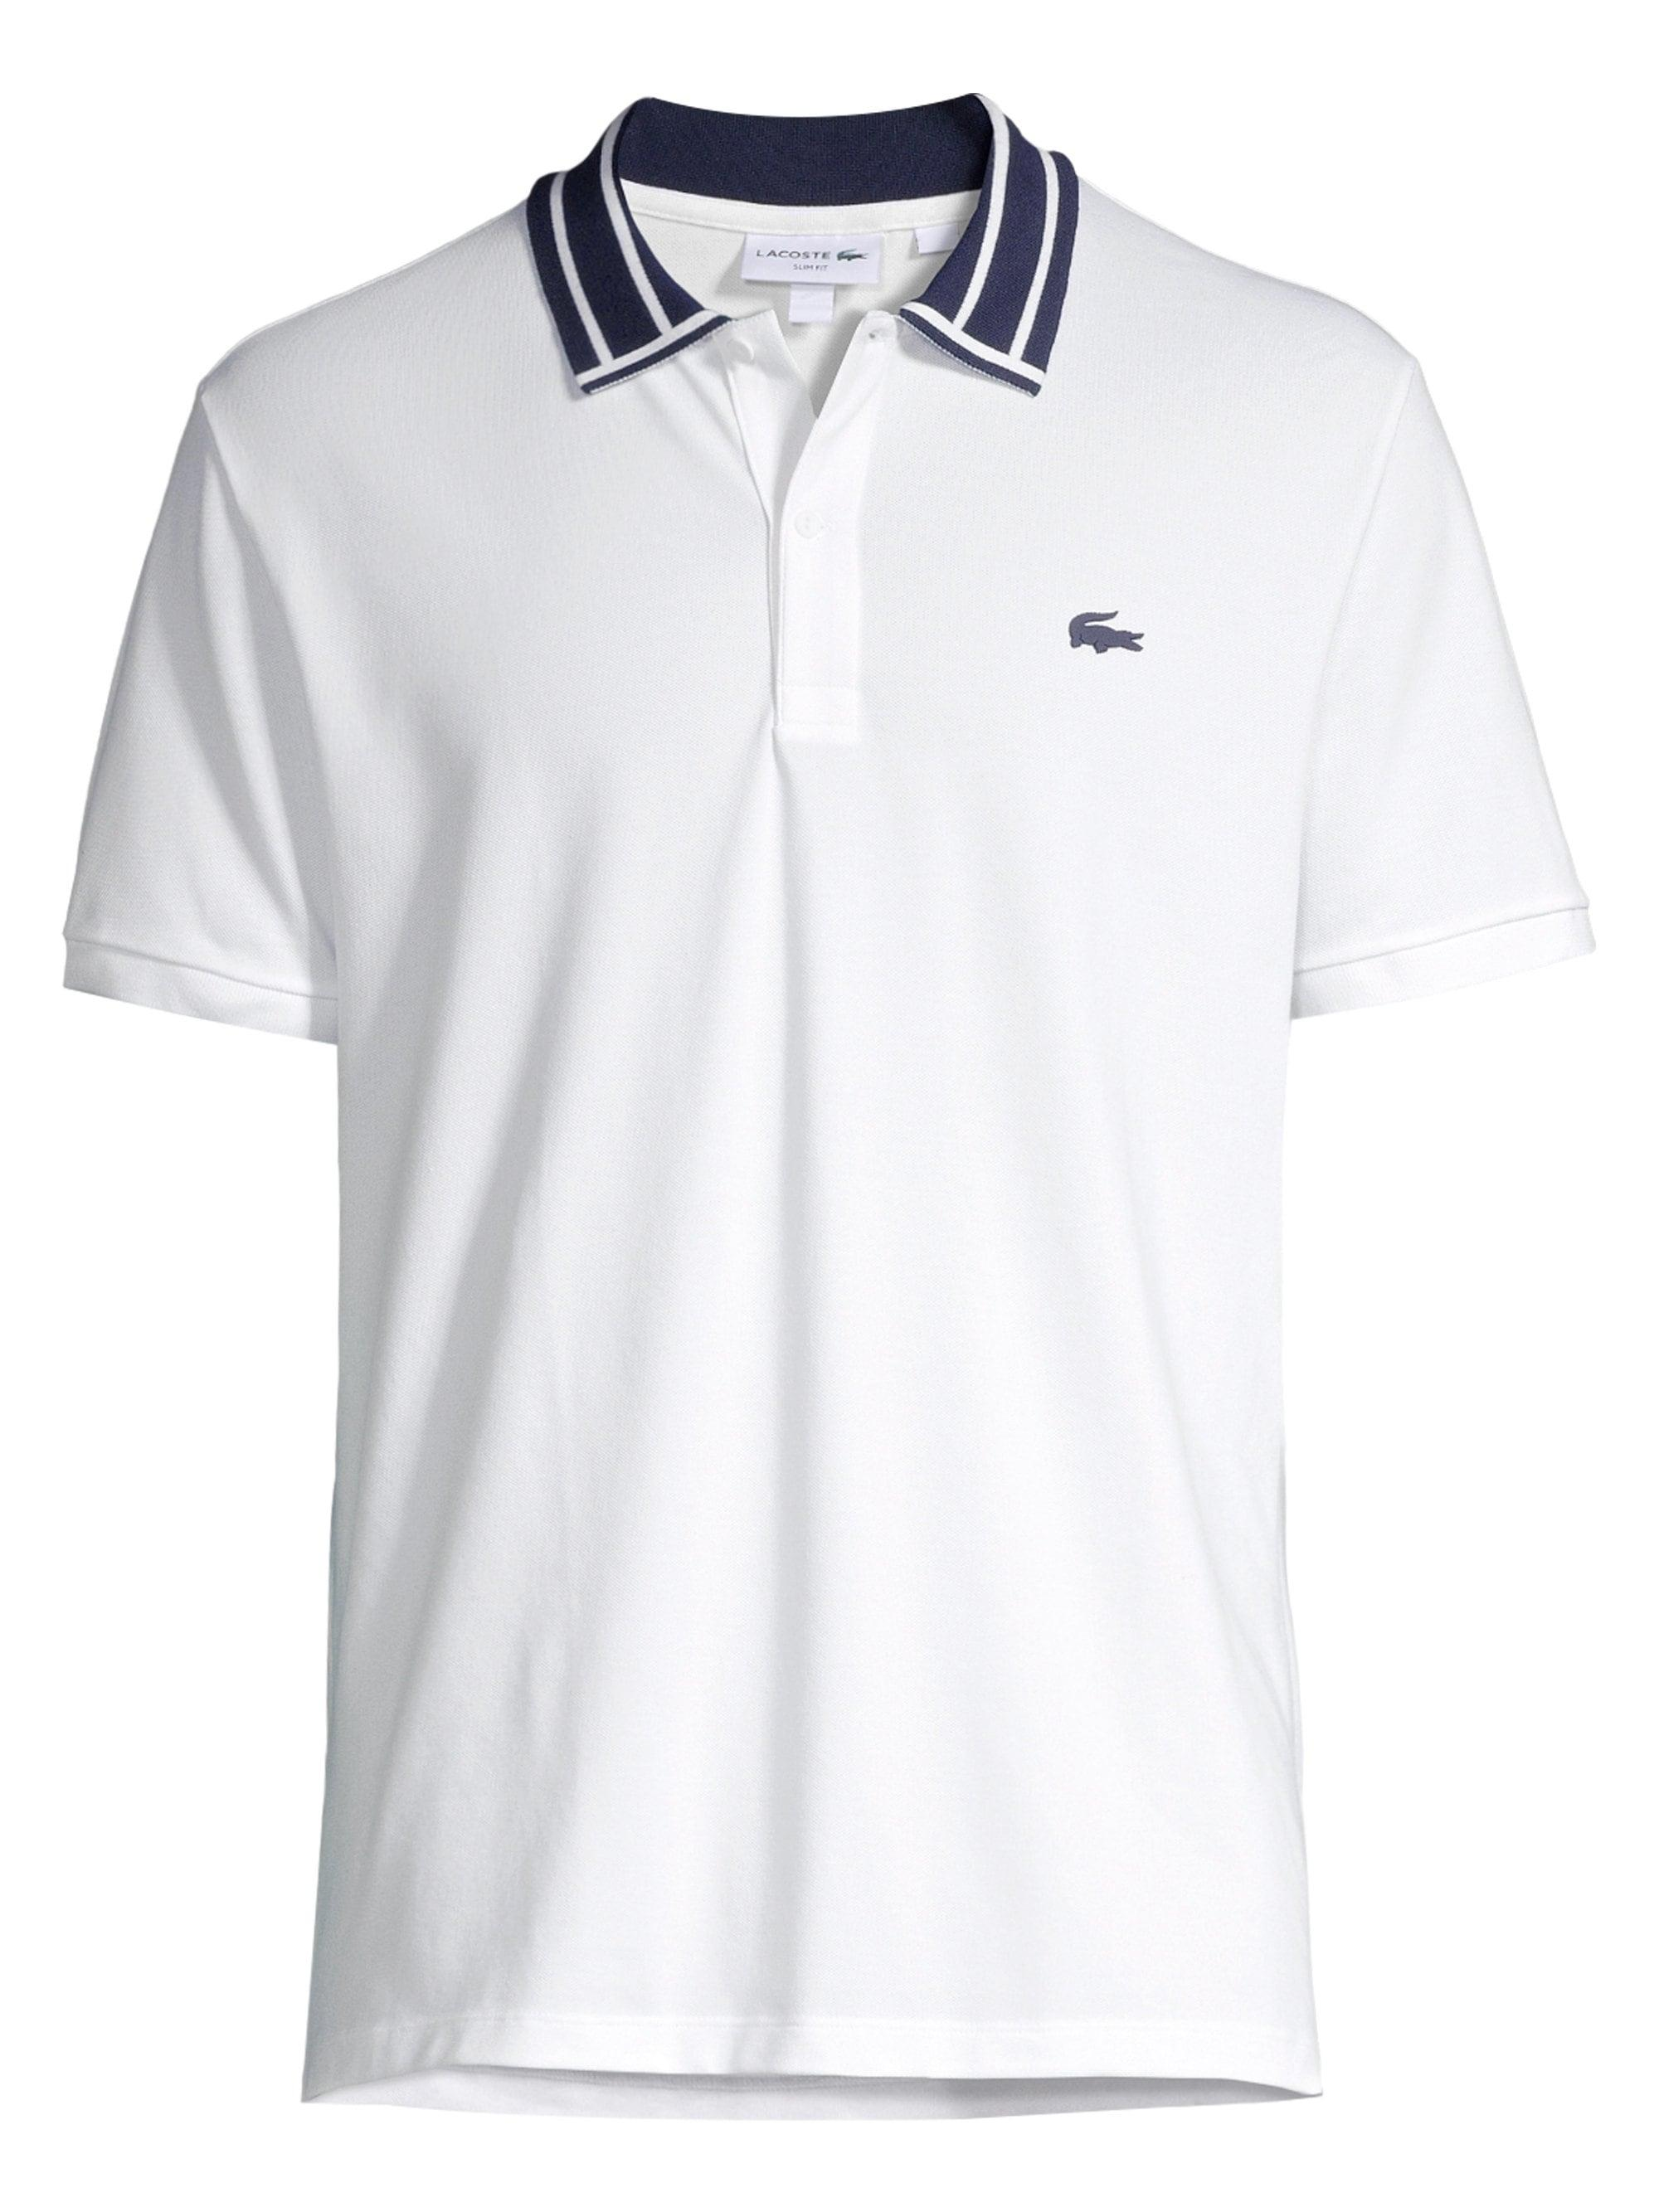 092bf995 Lyst - Lacoste Men's Slim-fit Stretch Pique Polo - White - Size 7 ...